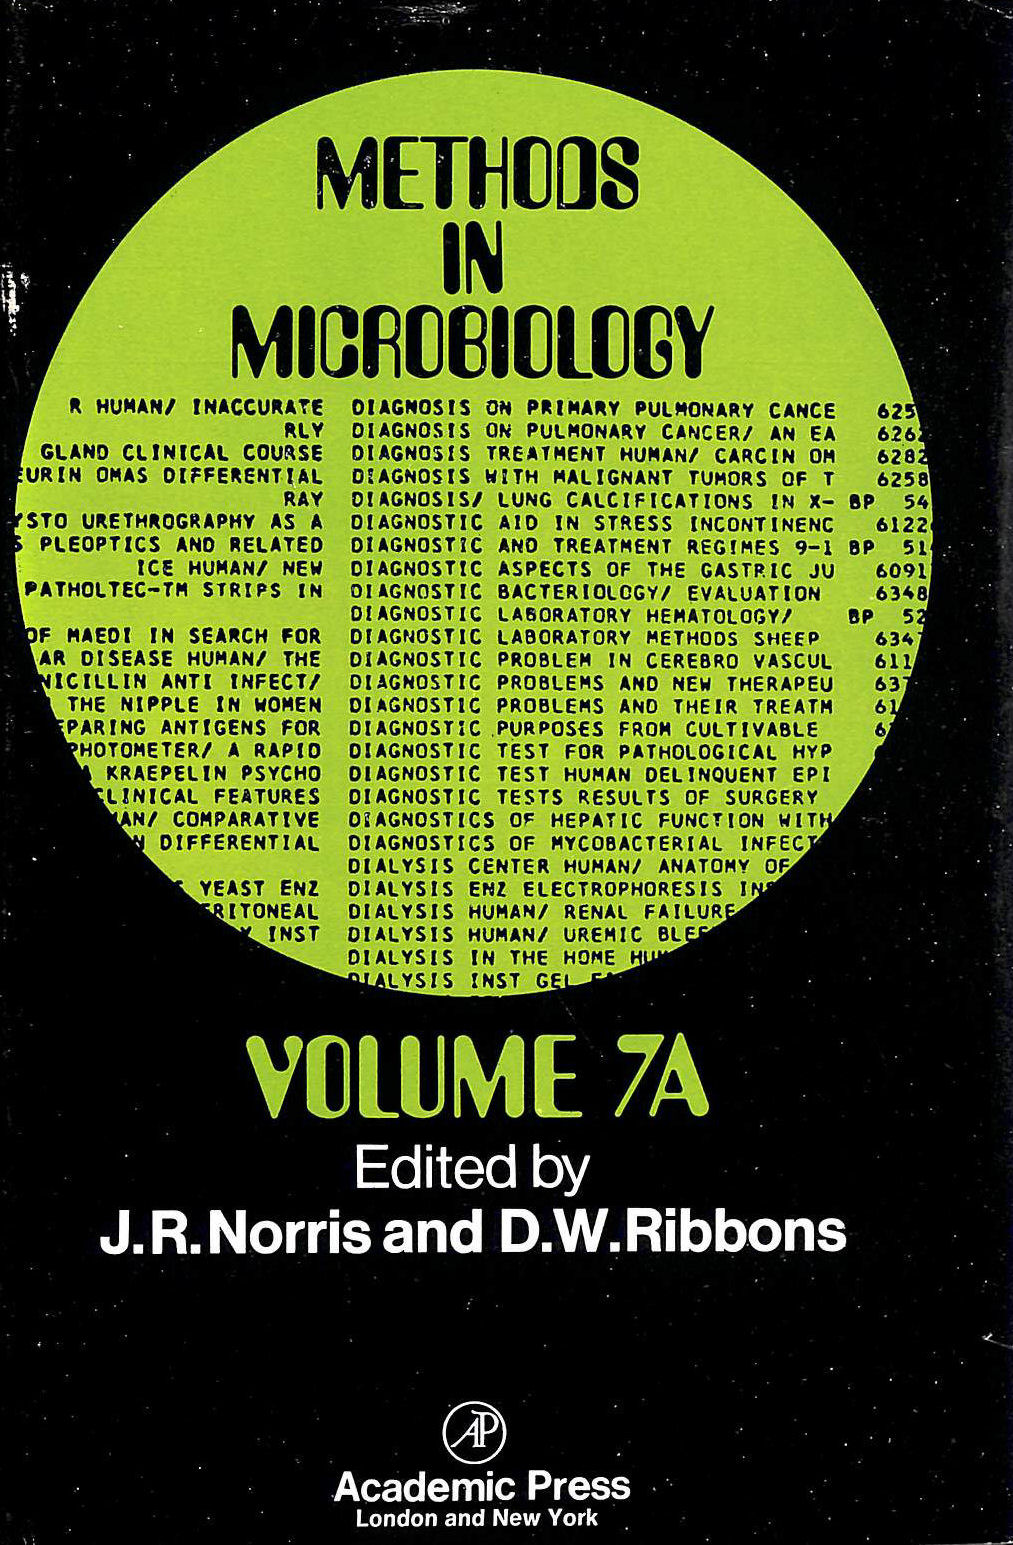 Image for Methods in Microbiology: v. 7A